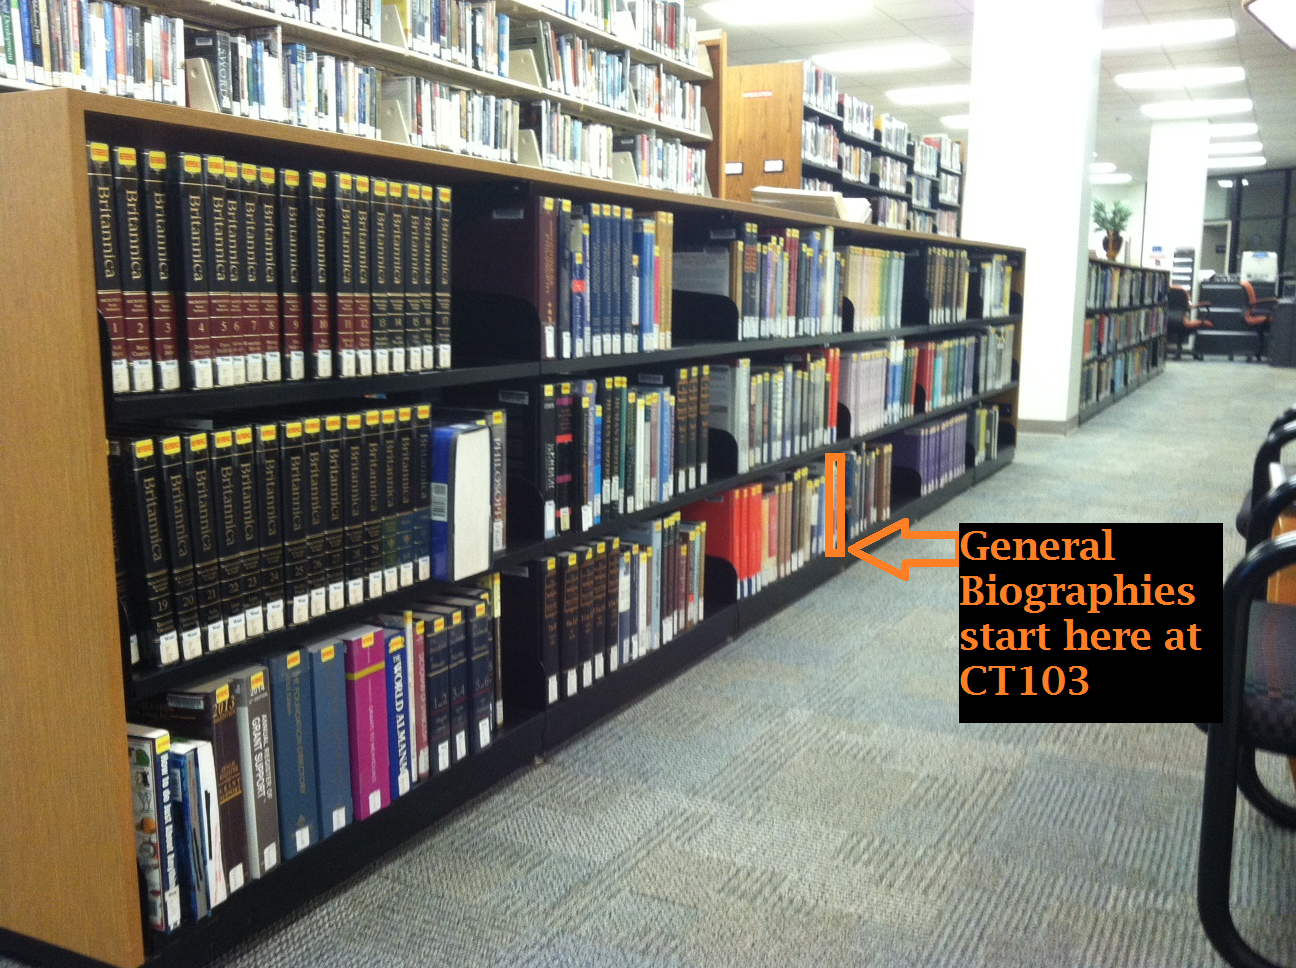 General Reference Books on Stacks